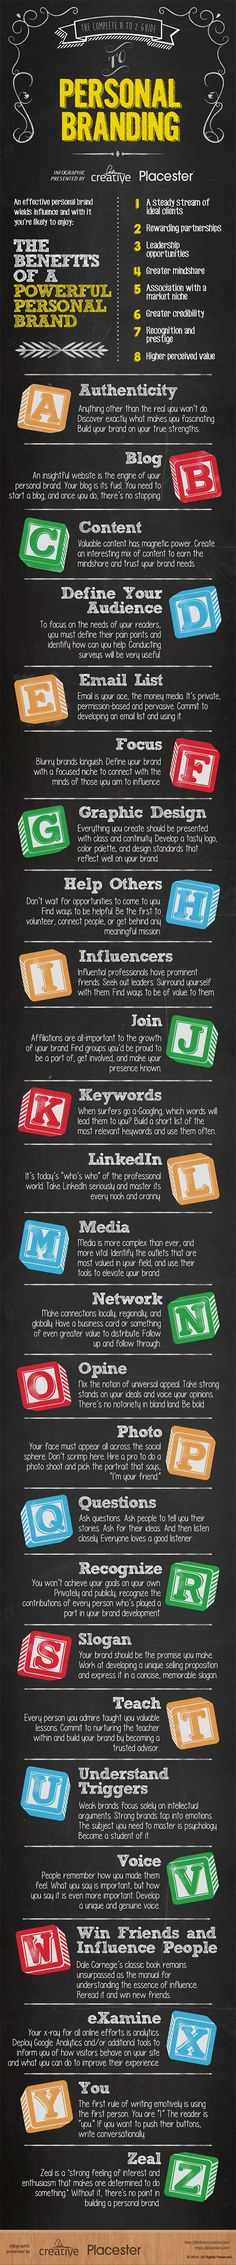 Personal Branding is often overlooked, but it is a key part of your #SocialMedia #Marketing Strategy.